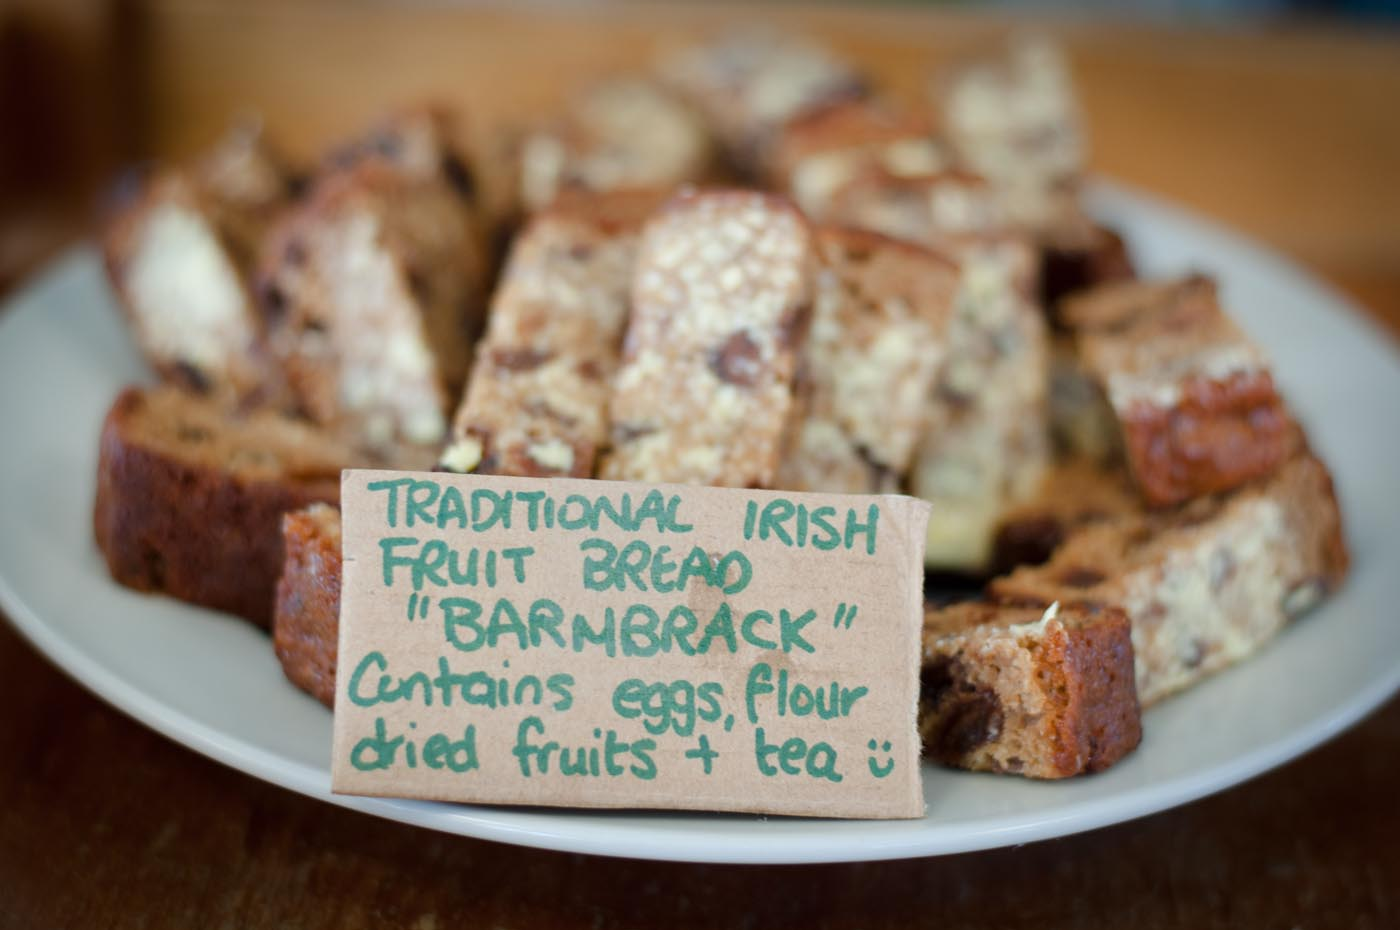 Photo showing a plate of traditional Irish fruit bread or Barmbrack with a sign listing the ingredients at the front - click to view larger image